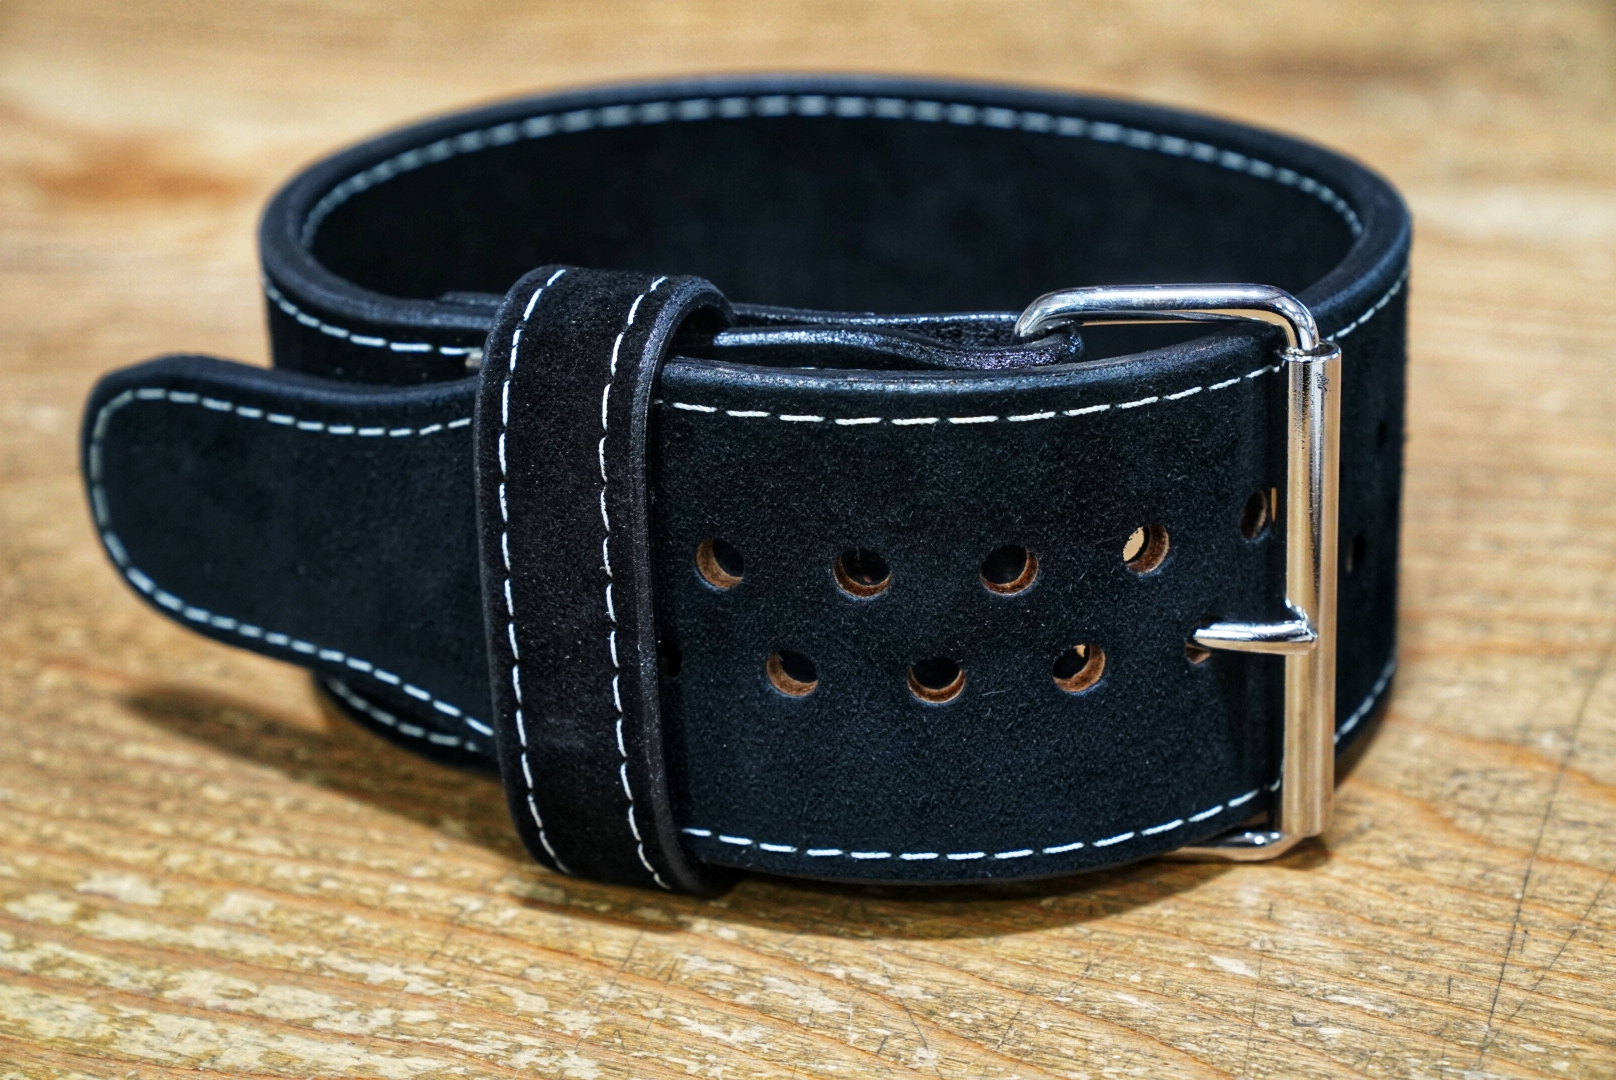 Pioneer Cut Suede 1 prong 10mm Belt - Black